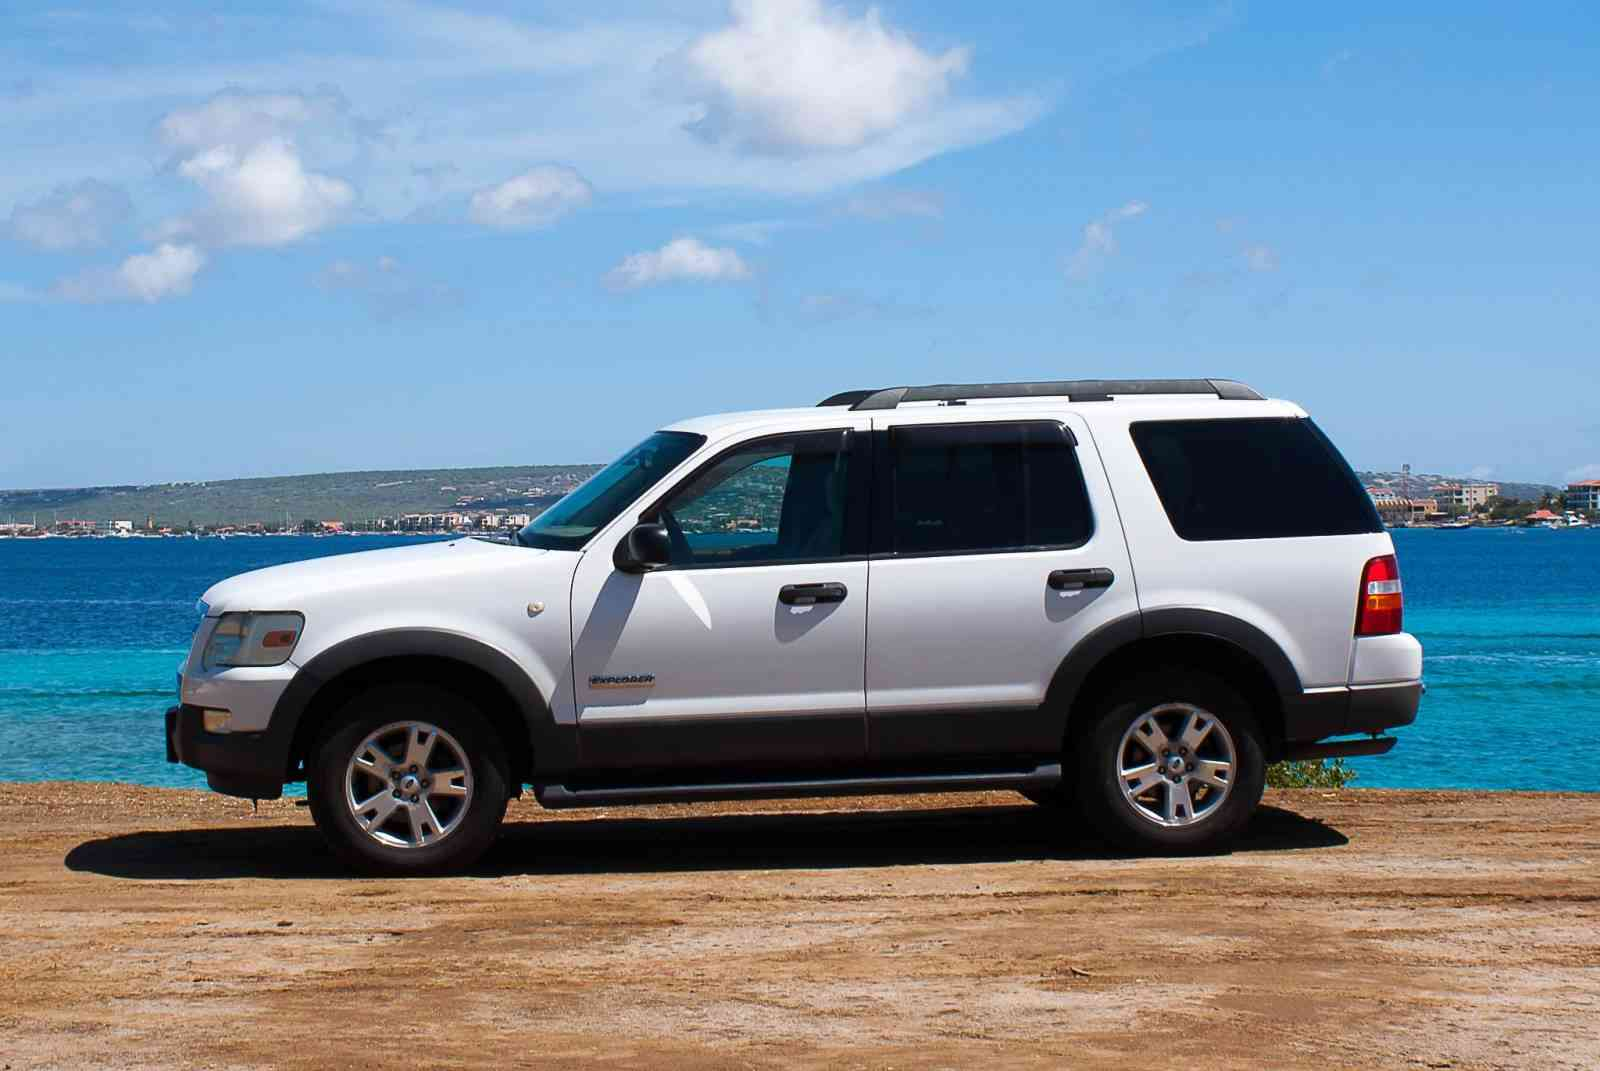 Tropical Car rental Bonaire - Ford Explorer V6 auto huren